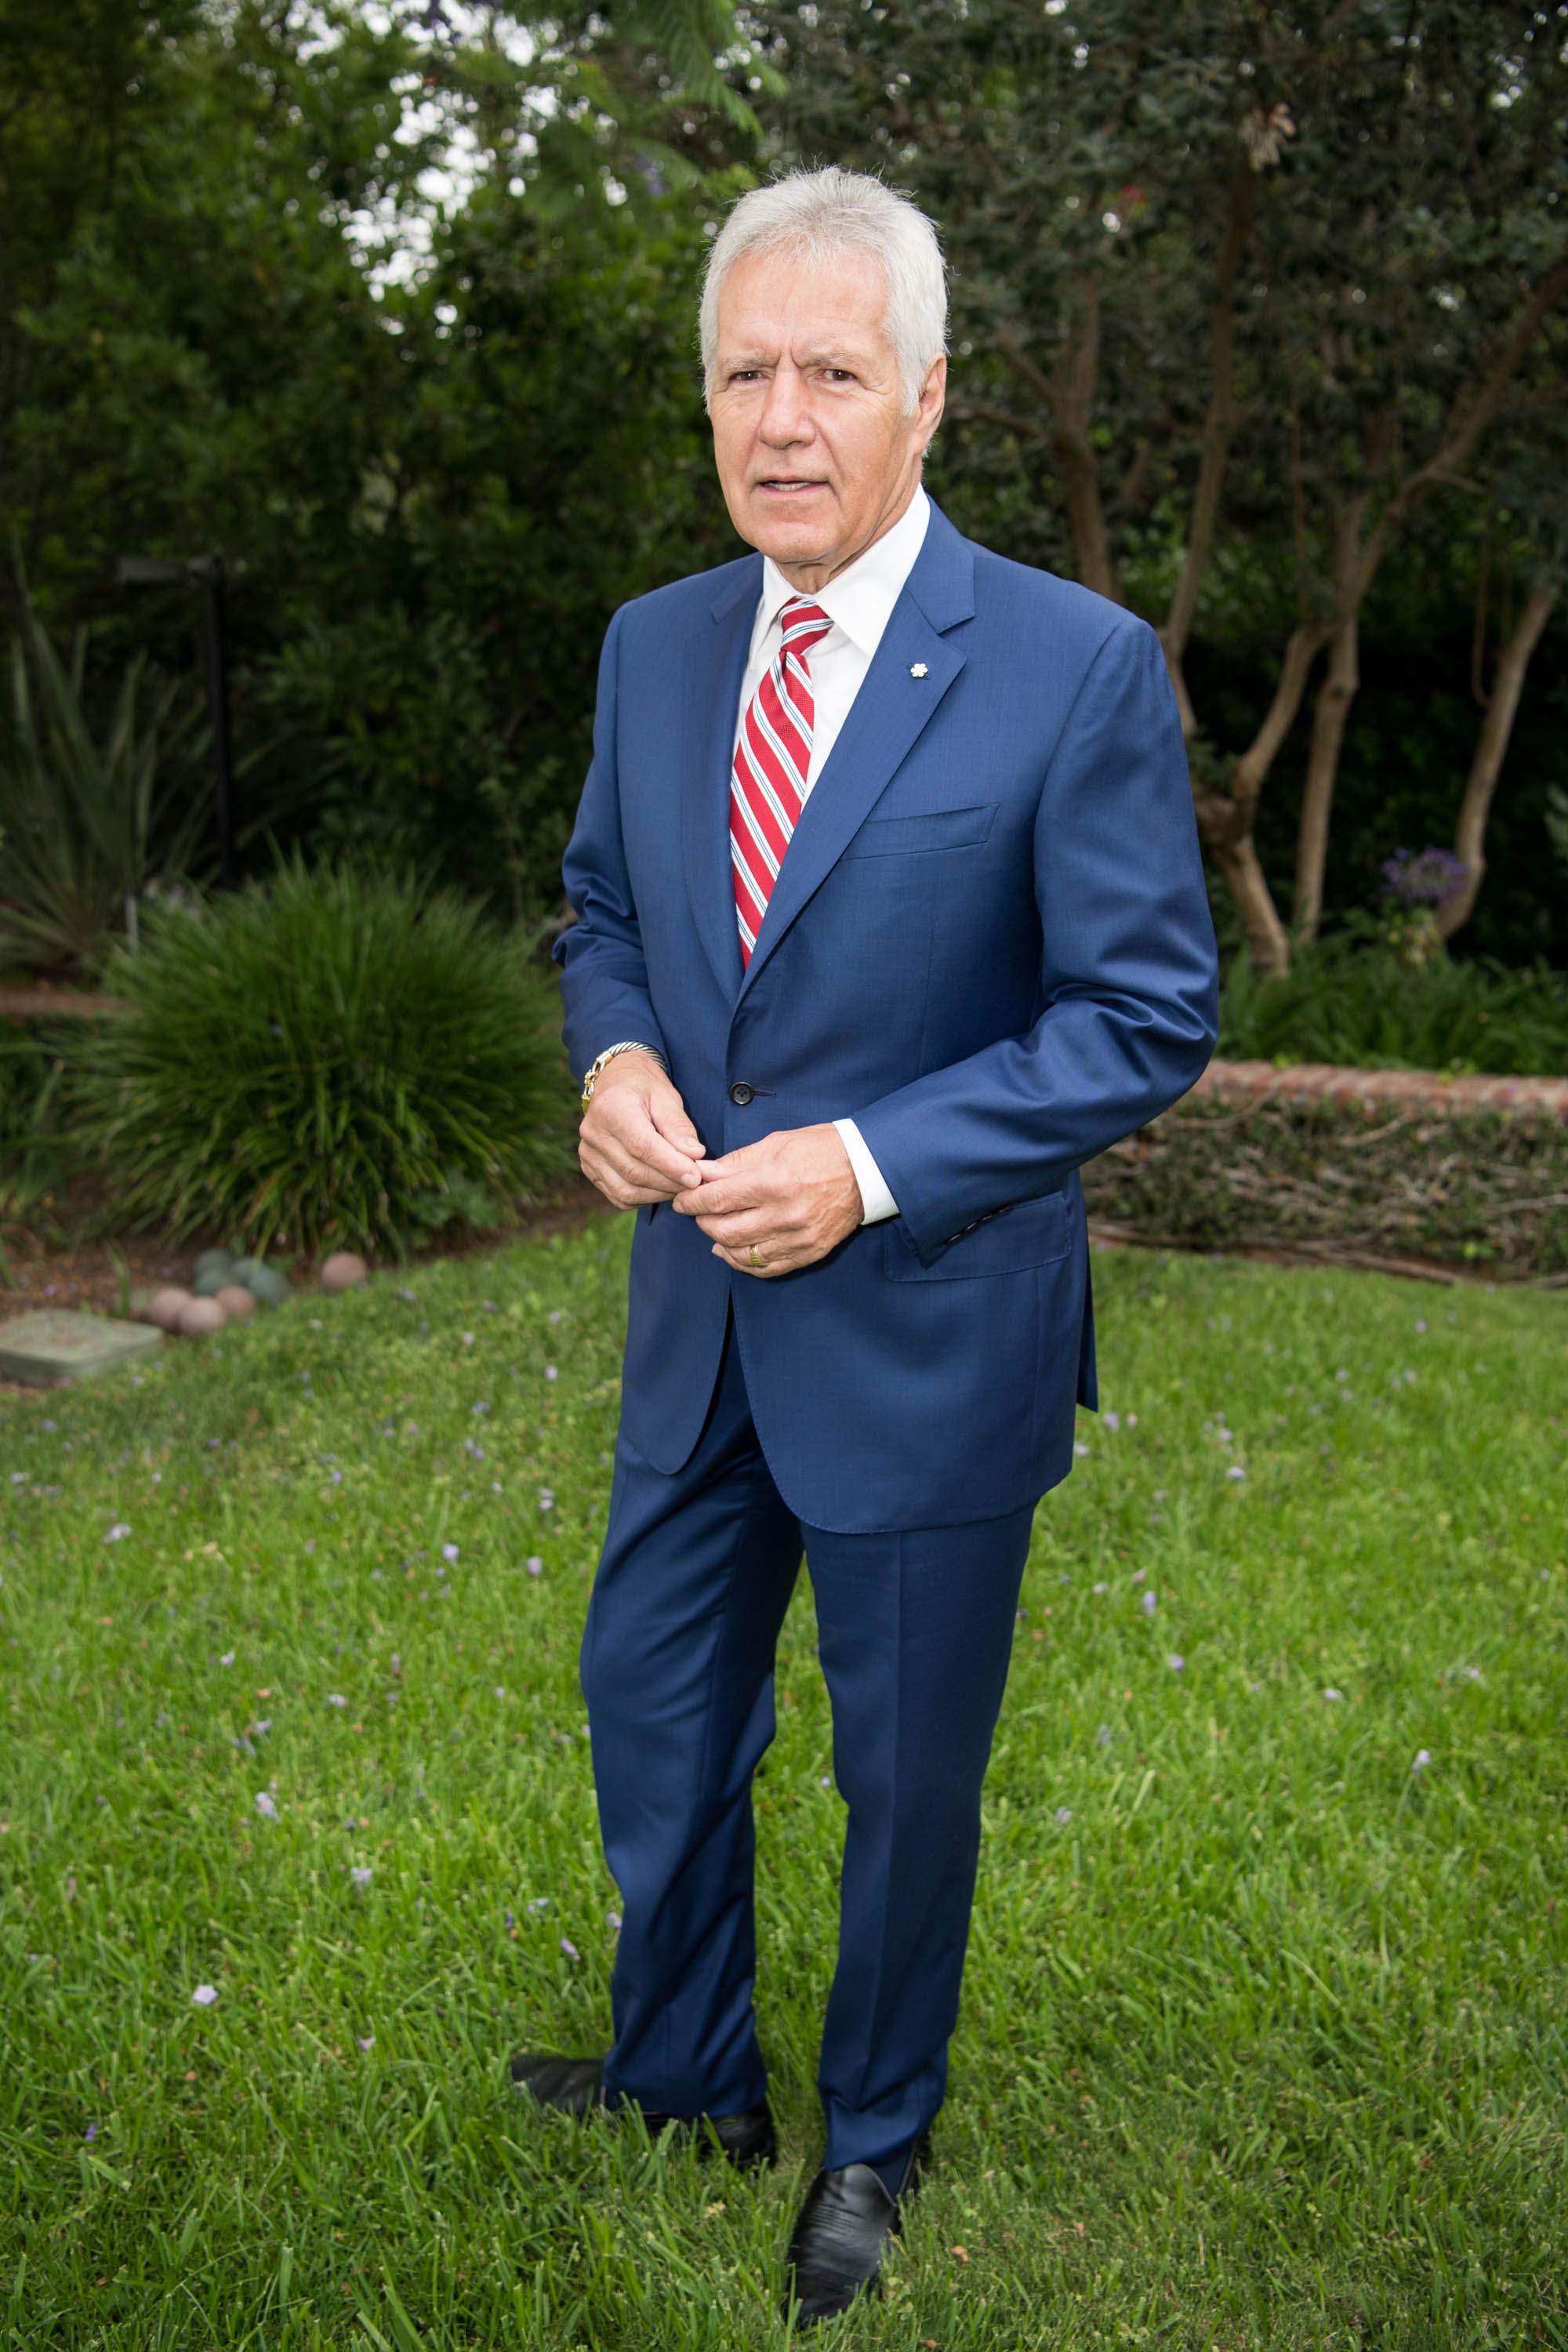 Alex Trebek at the 150th anniversary of Canada's Confederation at the Official Residence of Canada on June 30, 2017 in Los Angeles, California | Photo: Getty Images